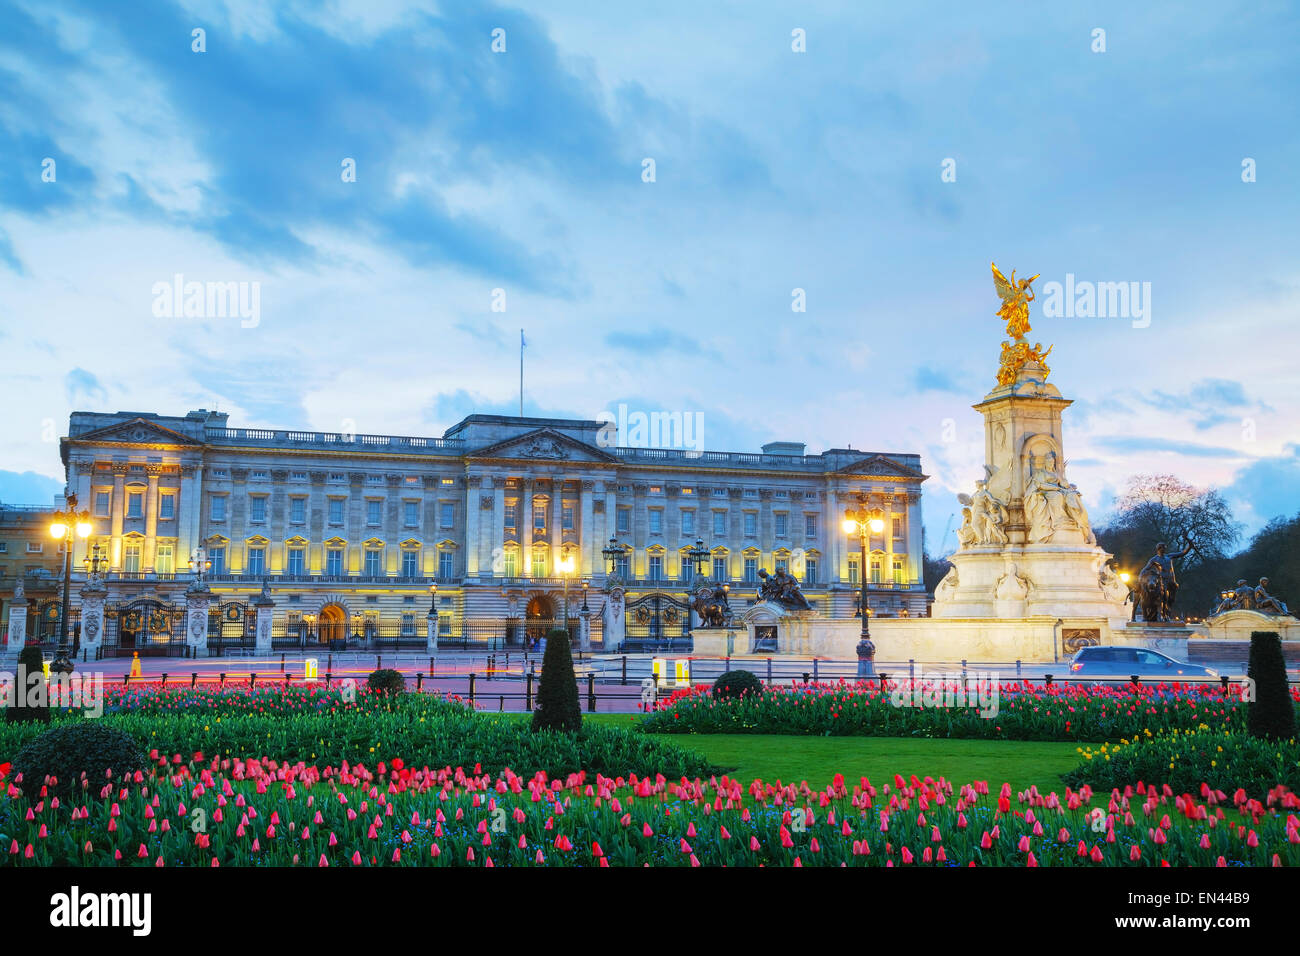 Buckingham palace in London, Great Britain at sunset Stock Photo